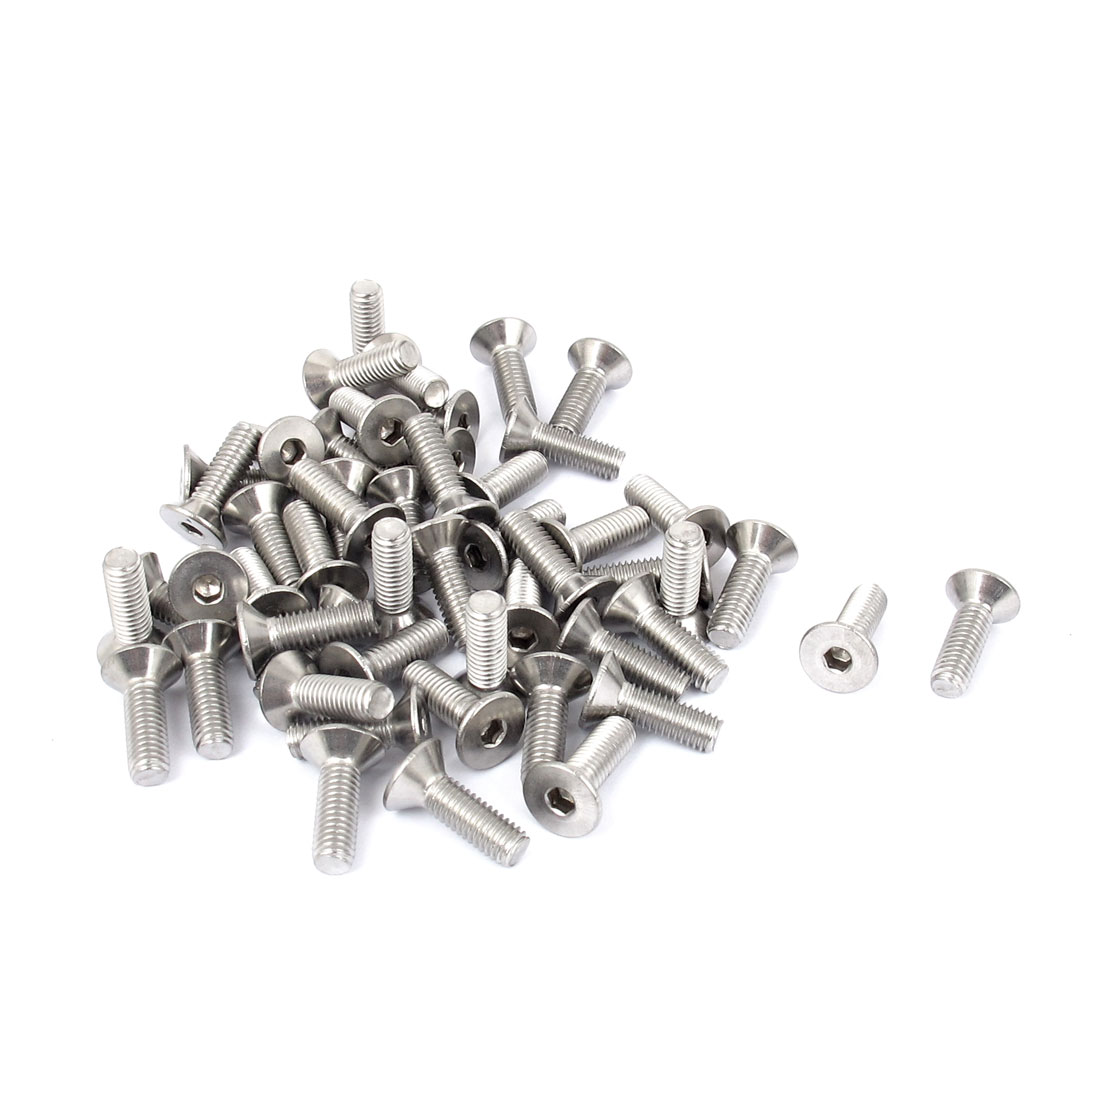 M5 x 16mm Metric 304 Stainless Steel Hex Socket Countersunk Flat Head Screw Bolts 50pcs